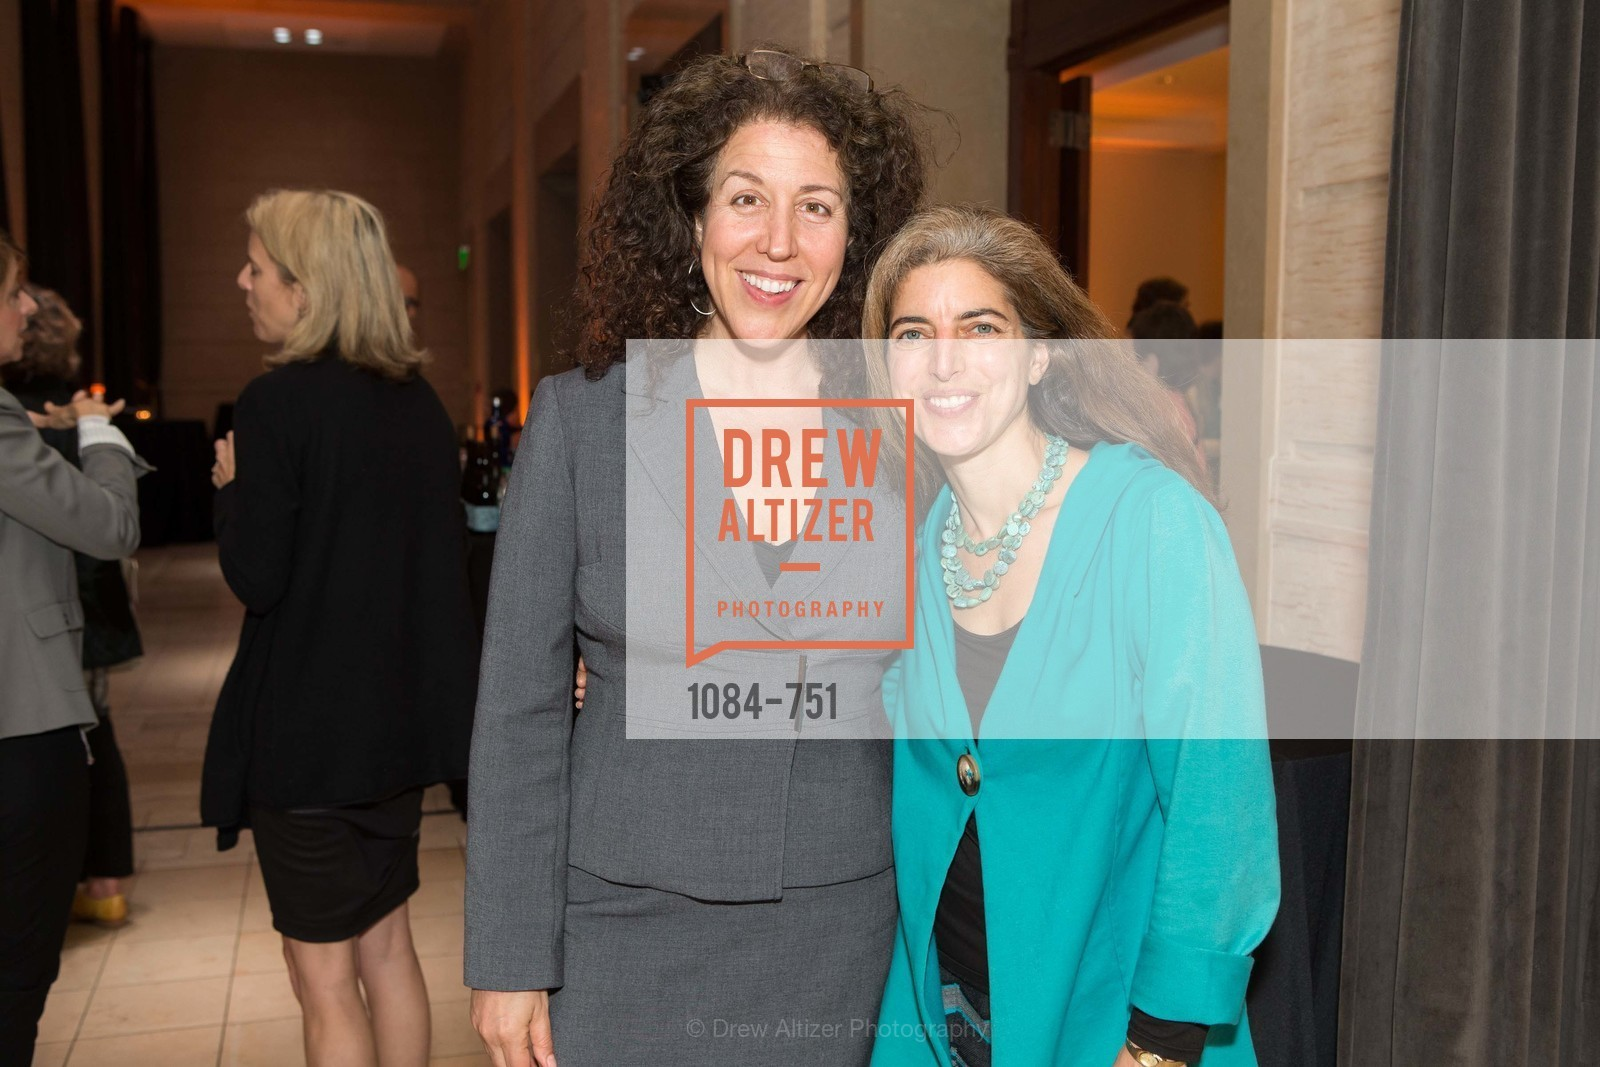 Beth Rattner, Claudia Polsky, CENTER FOR ENVIRONMENTAL HEALTH (CEH) 2015 Gala, Bently Reserve, May 28th, 2015,Drew Altizer, Drew Altizer Photography, full-service agency, private events, San Francisco photographer, photographer california